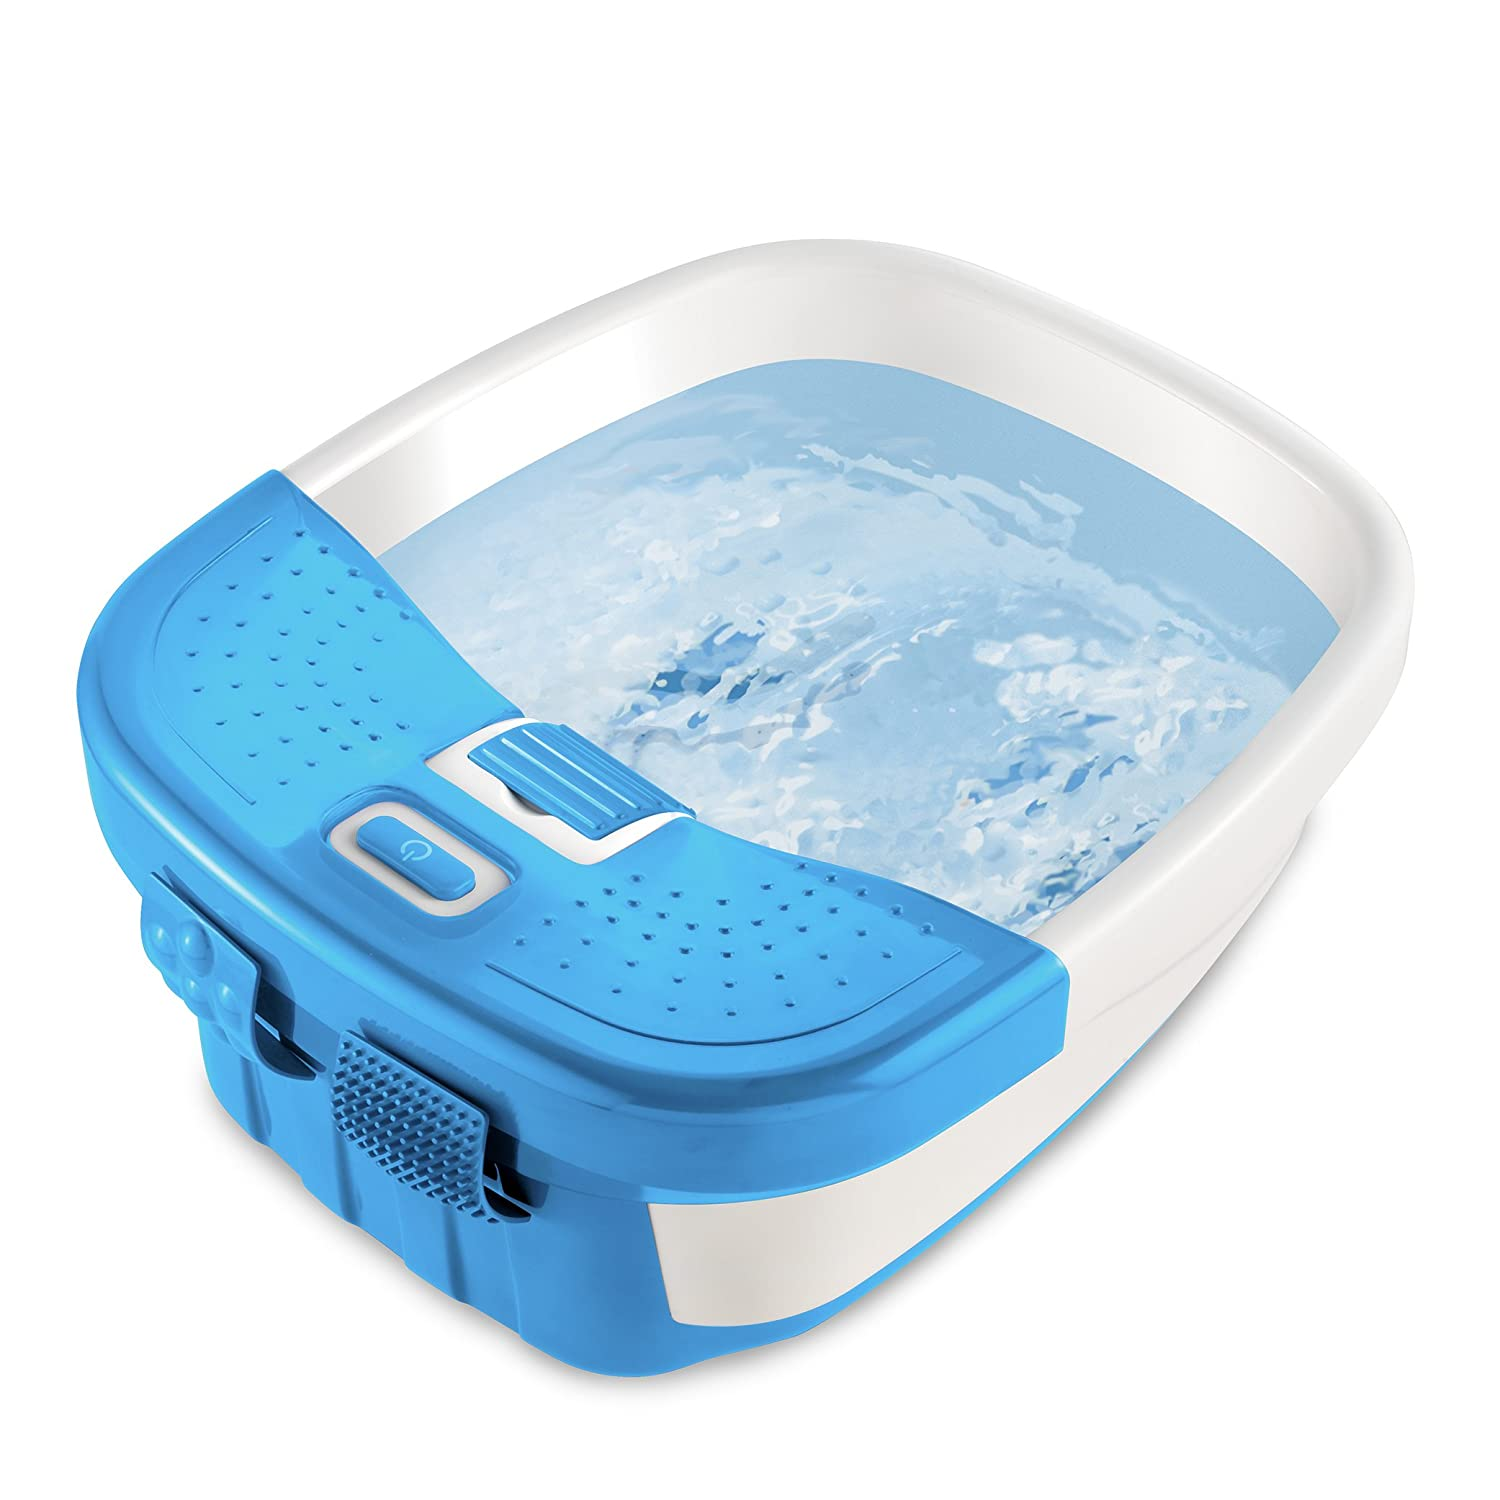 Amazon.com: HoMedics Bubble Bliss Deluxe Foot Spa with Heat ...